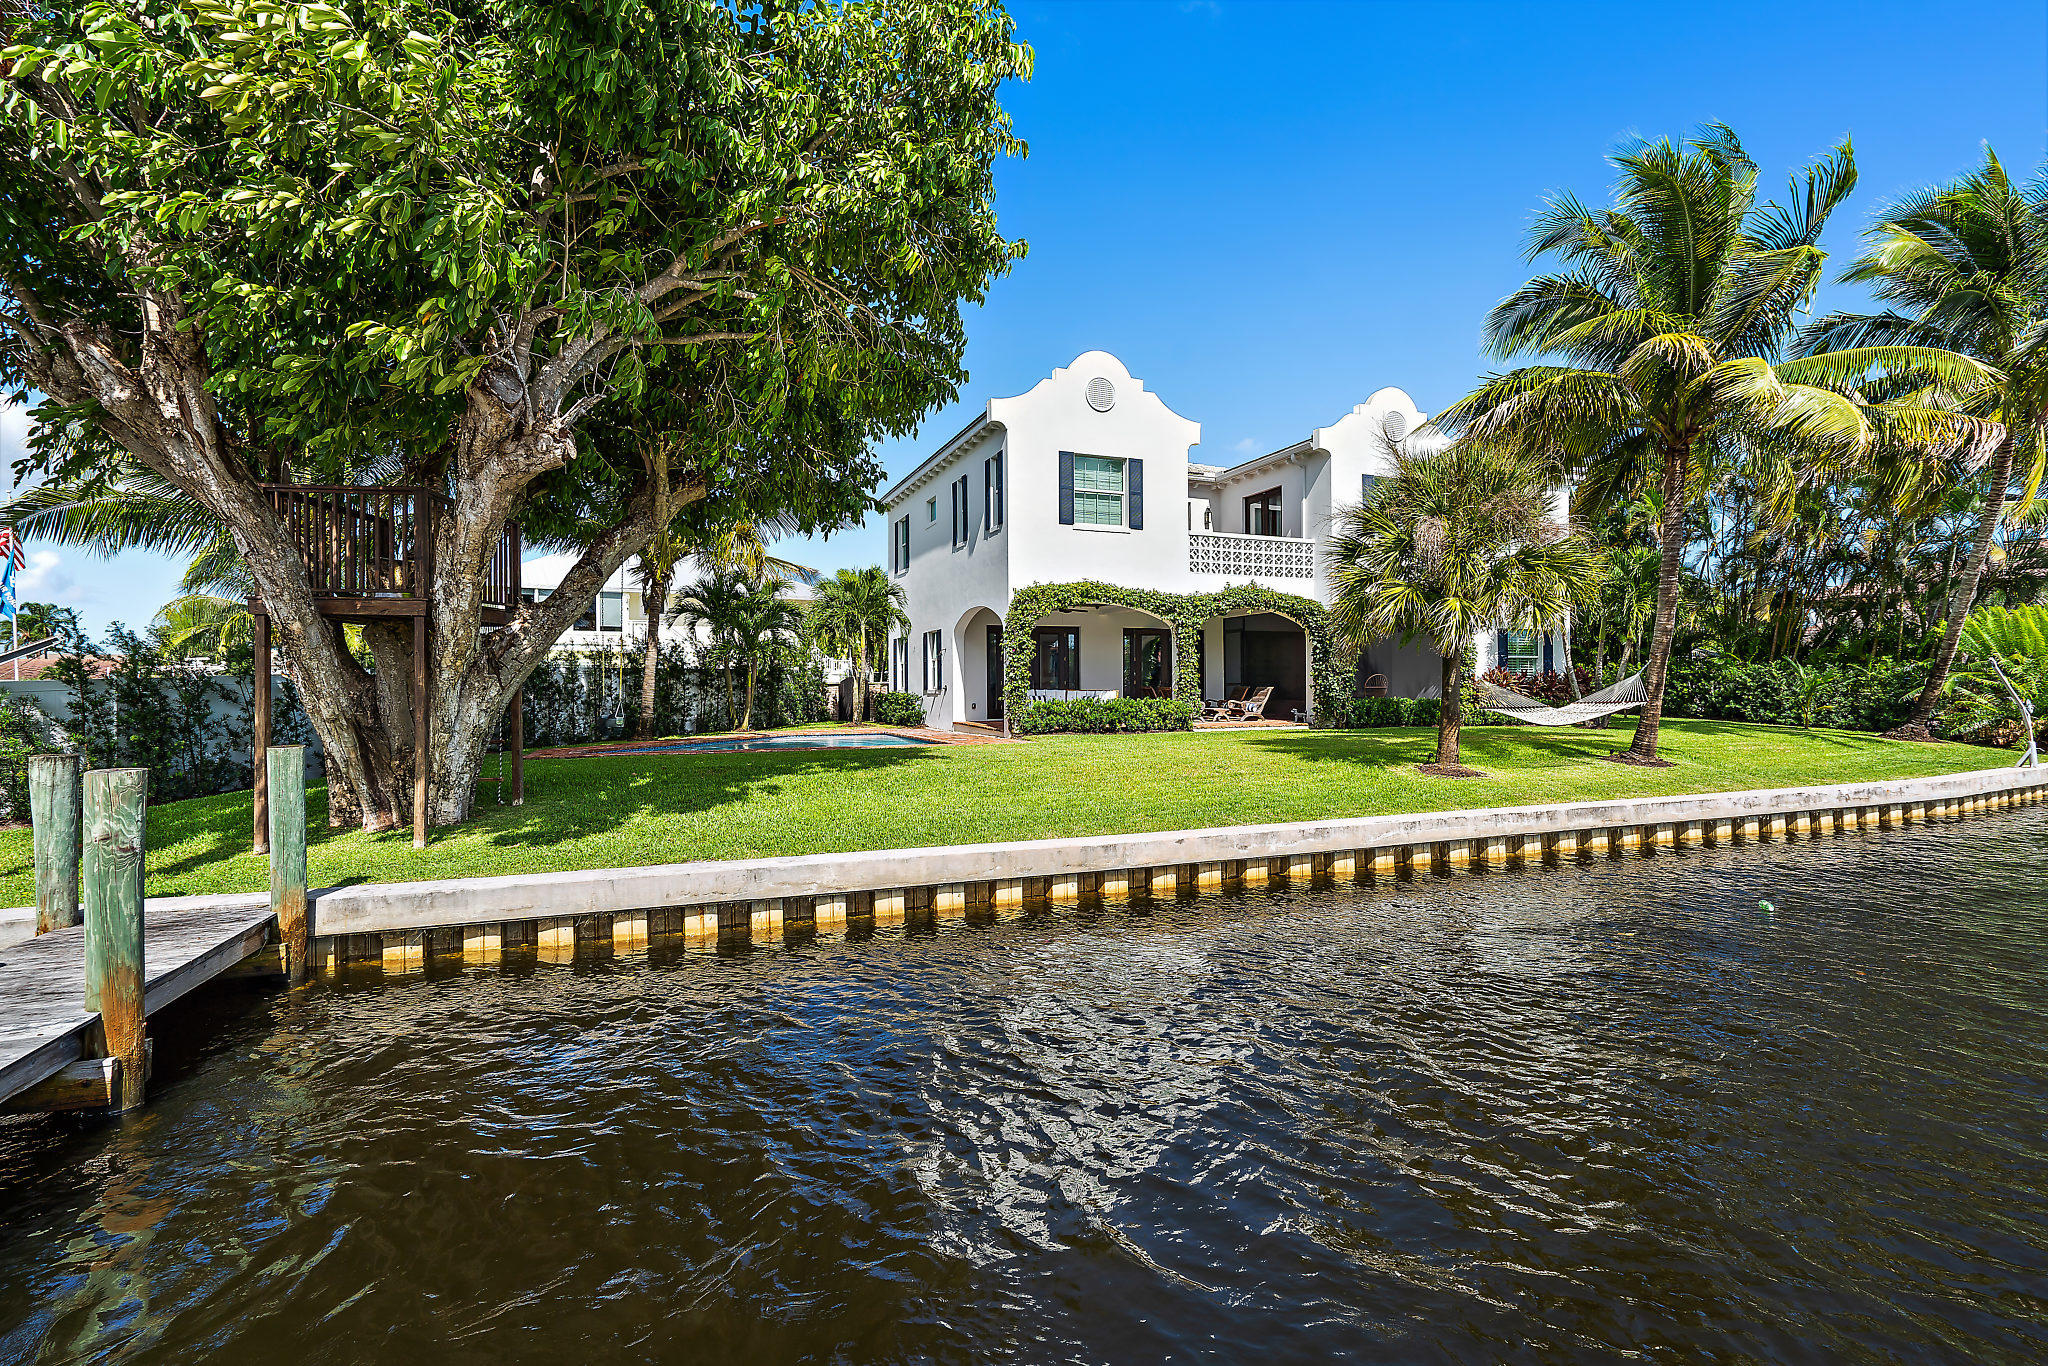 9217 SE Cove Point Street - Tequesta, Florida